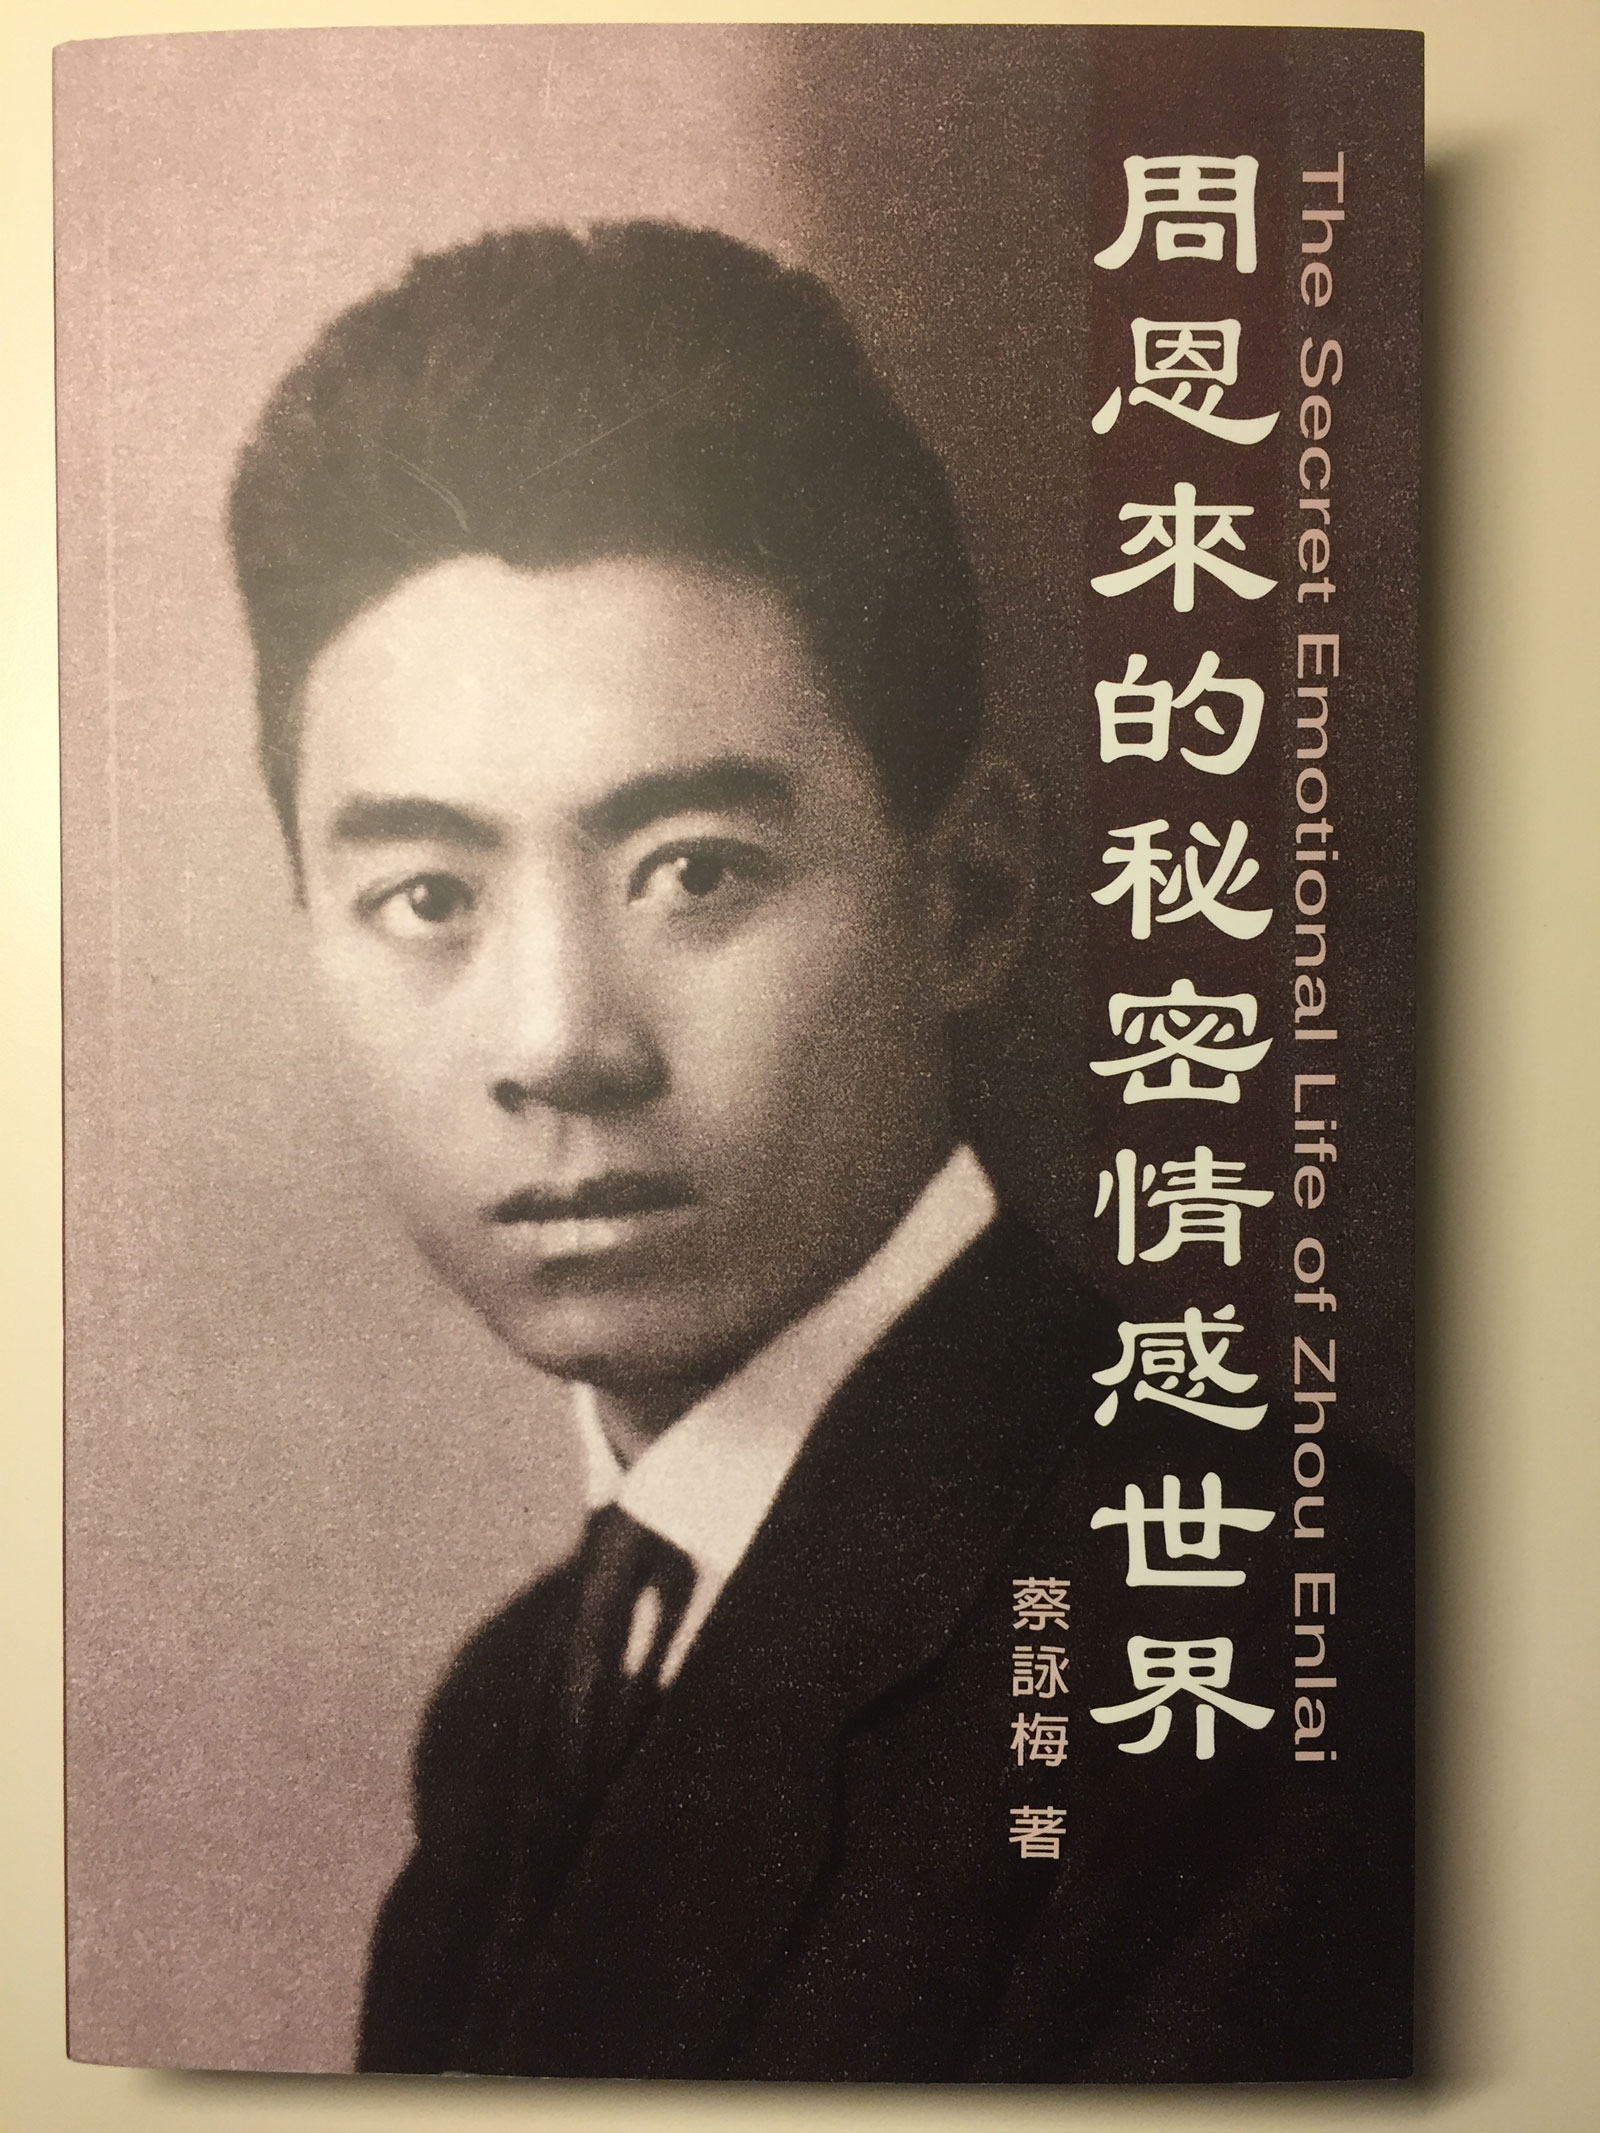 The cover of The Secret Emotional Life of Zhou Enlai, published by Bao's New Century Press